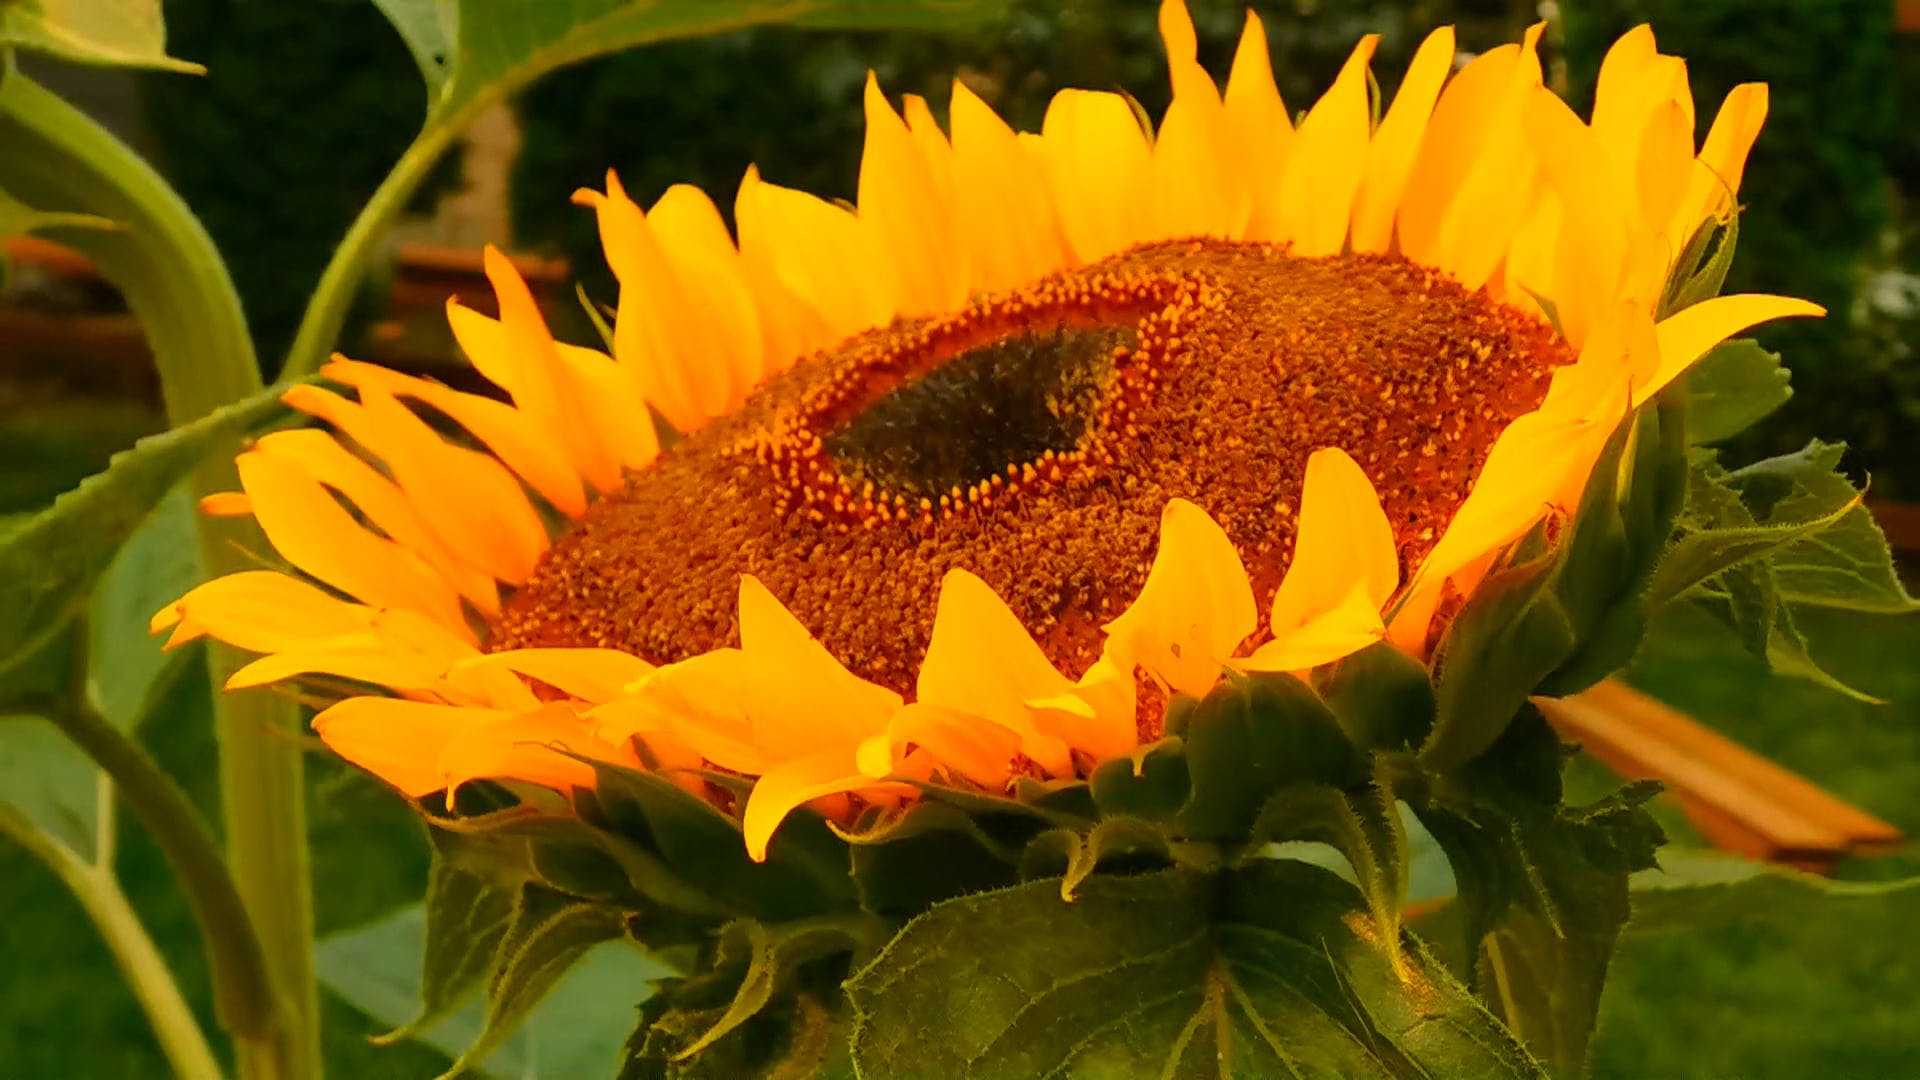 Sunflower in a Smog Hazy Day